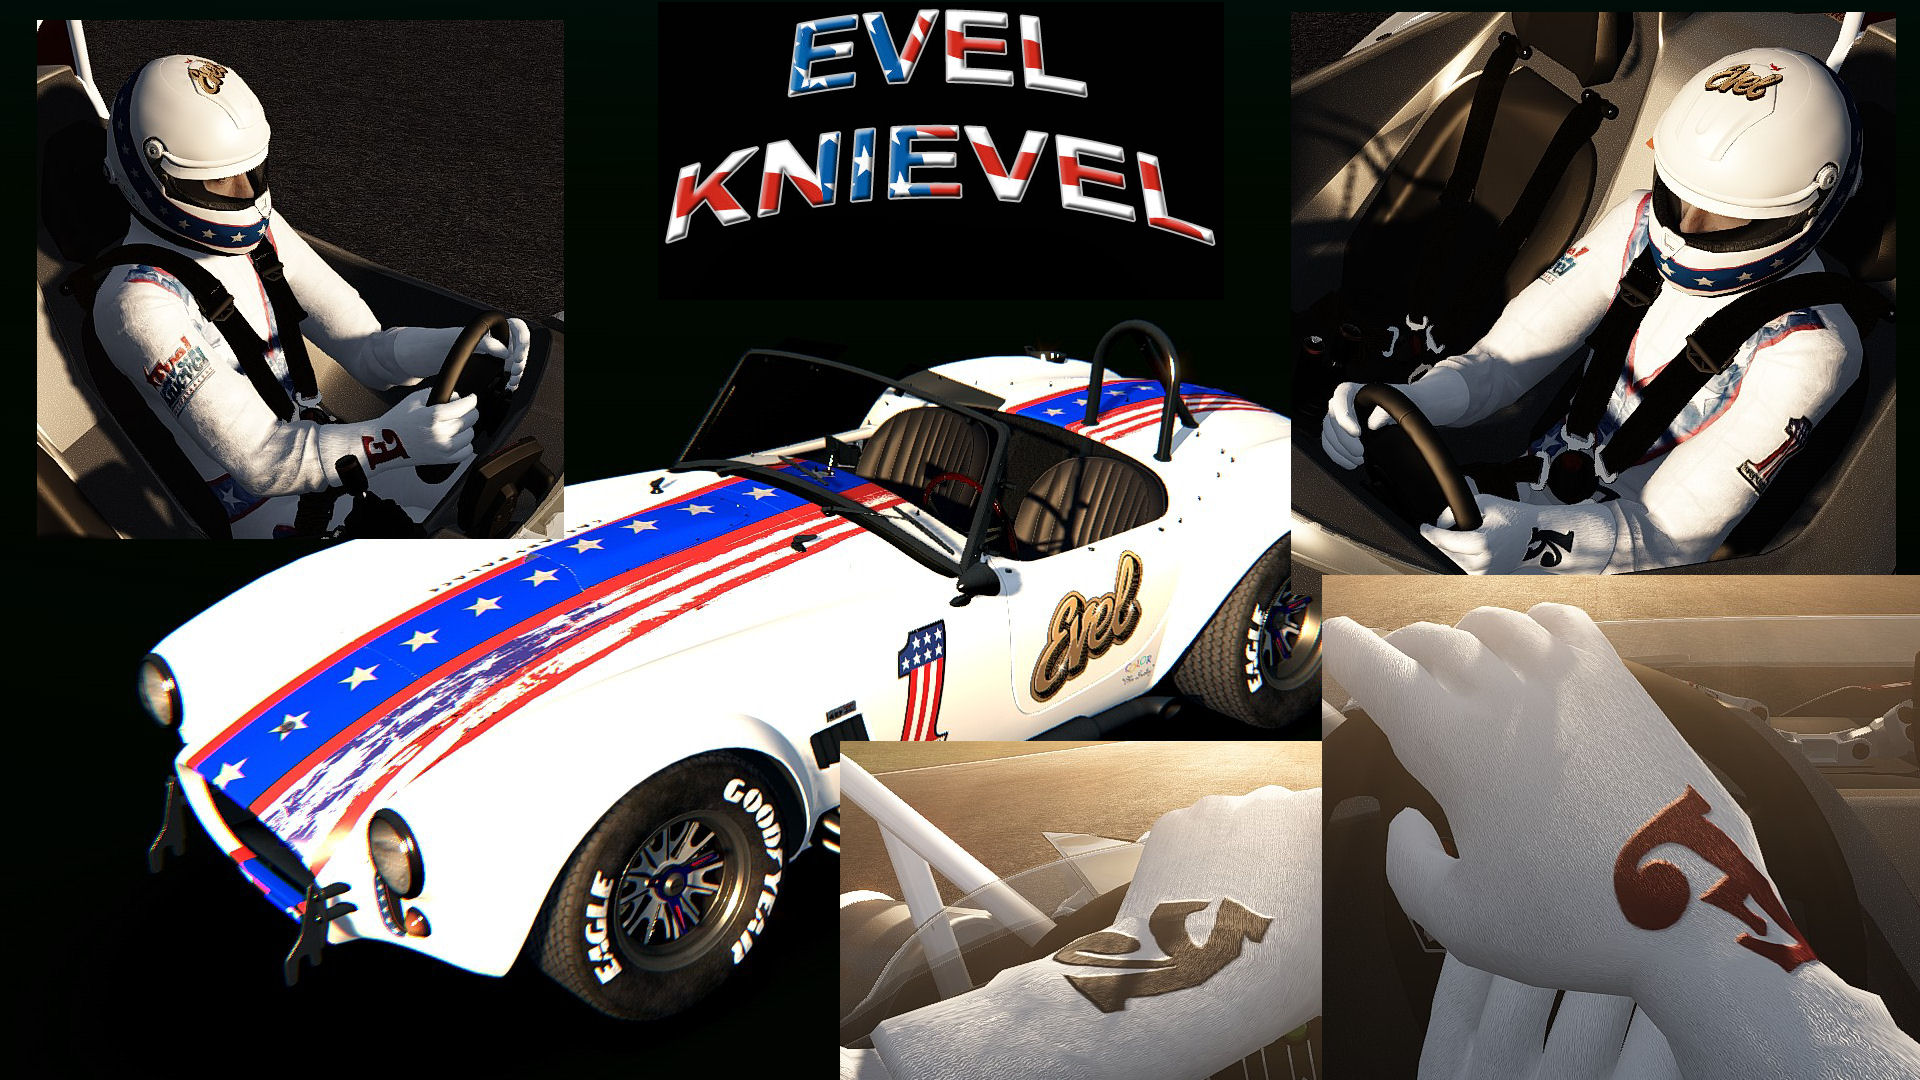 1920x1080 - Evel Knievel Wallpapers 17